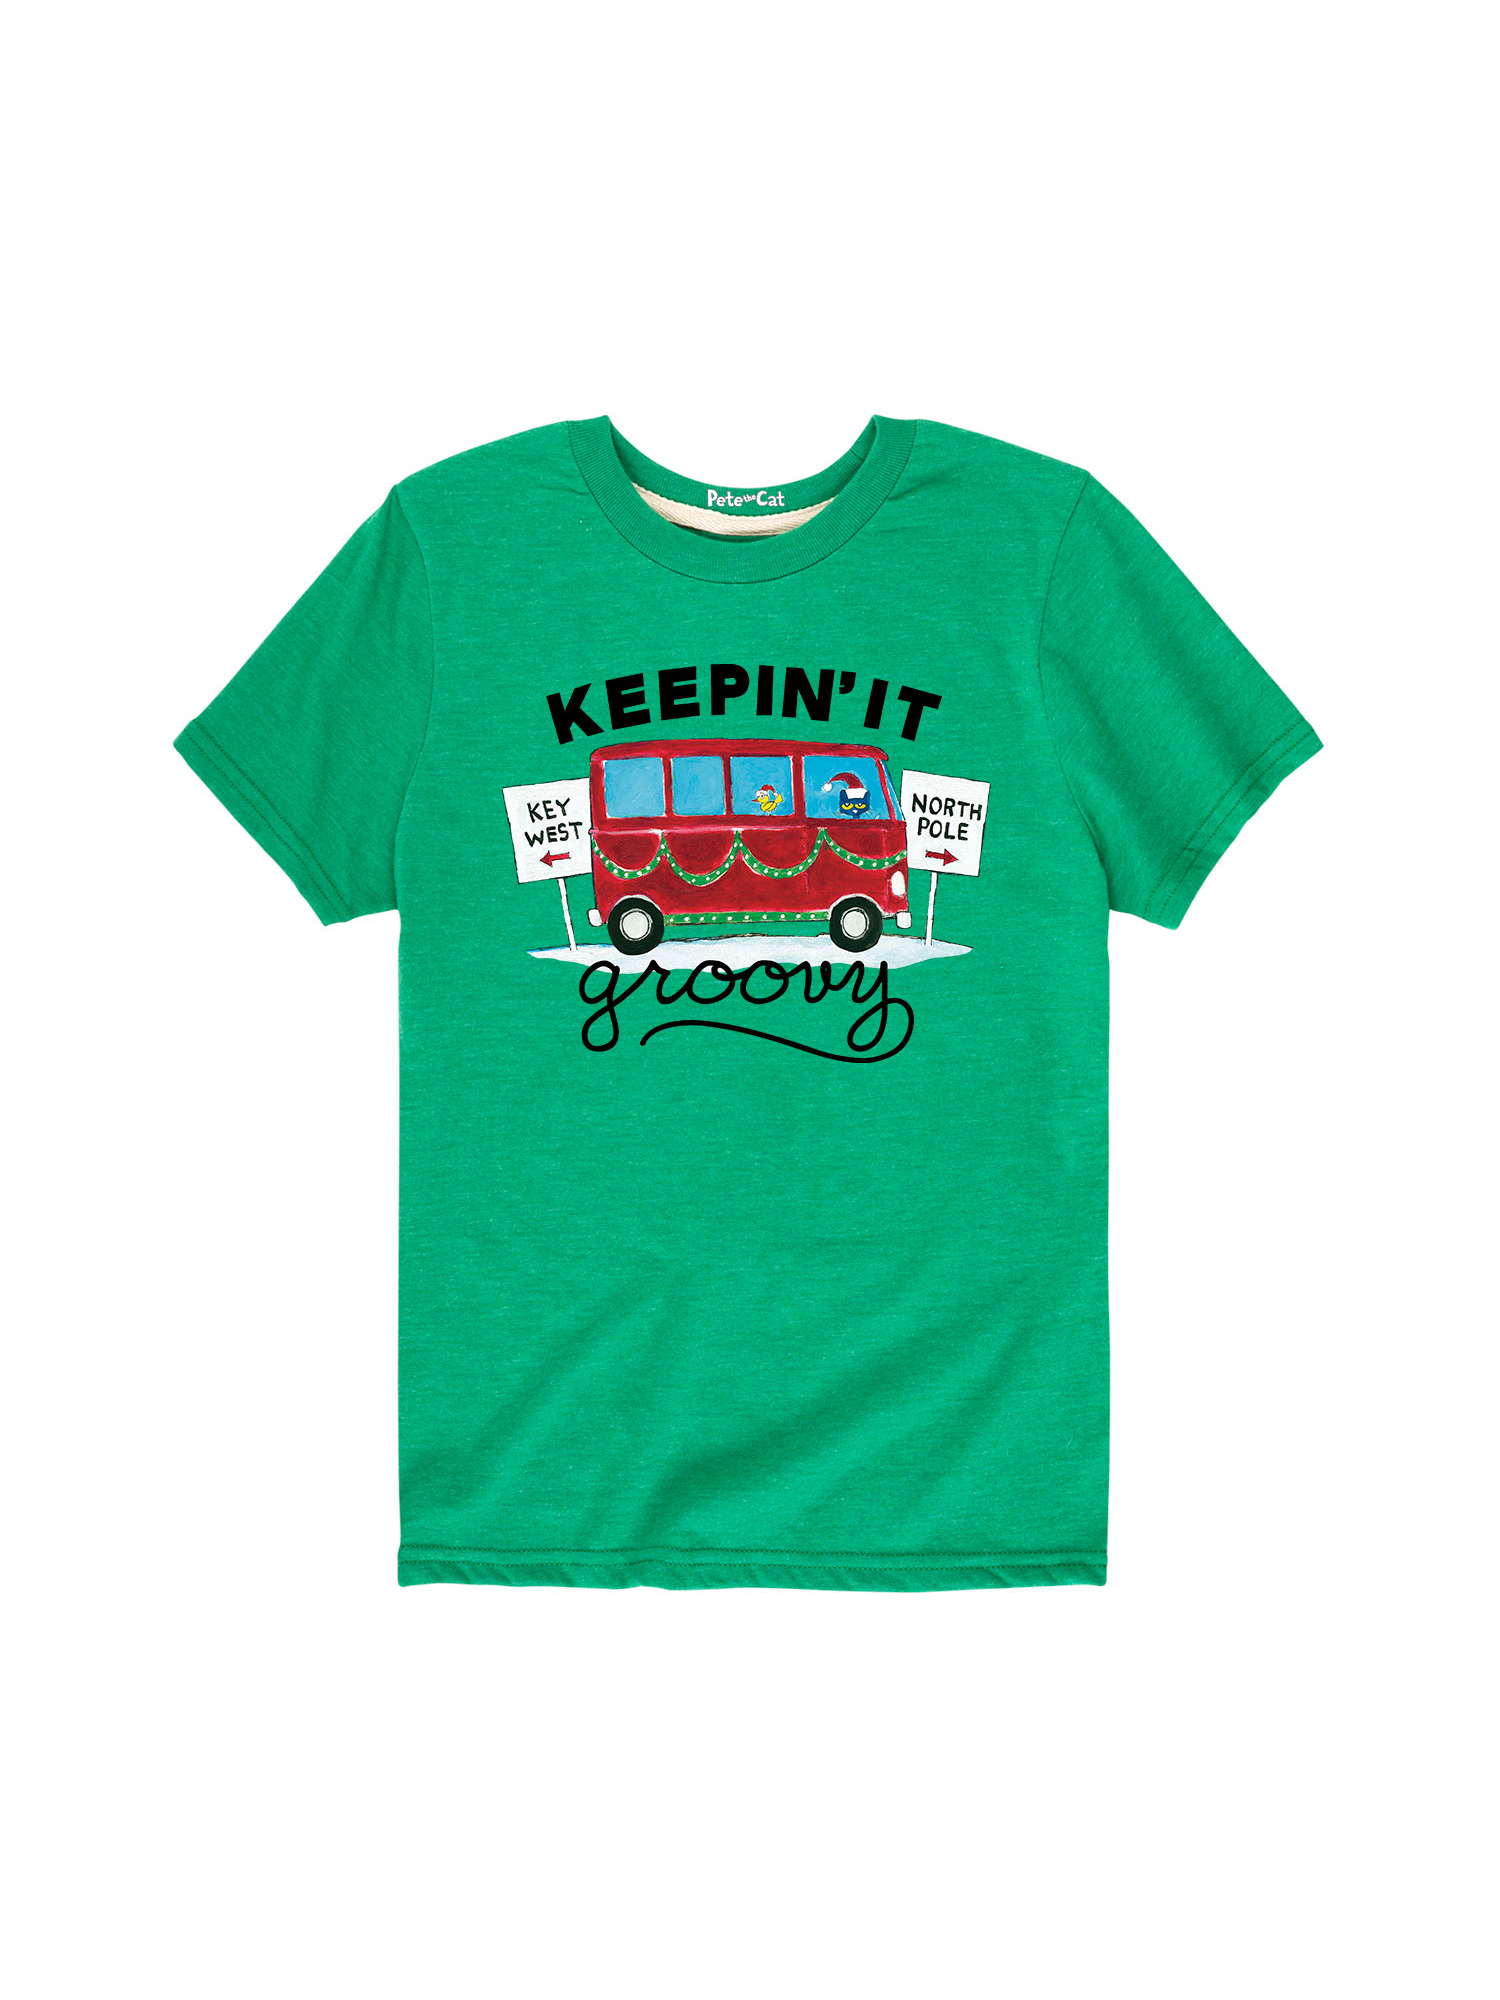 Pete The Cat Keepin' It Groovy - Toddler Short Sleeve Tee